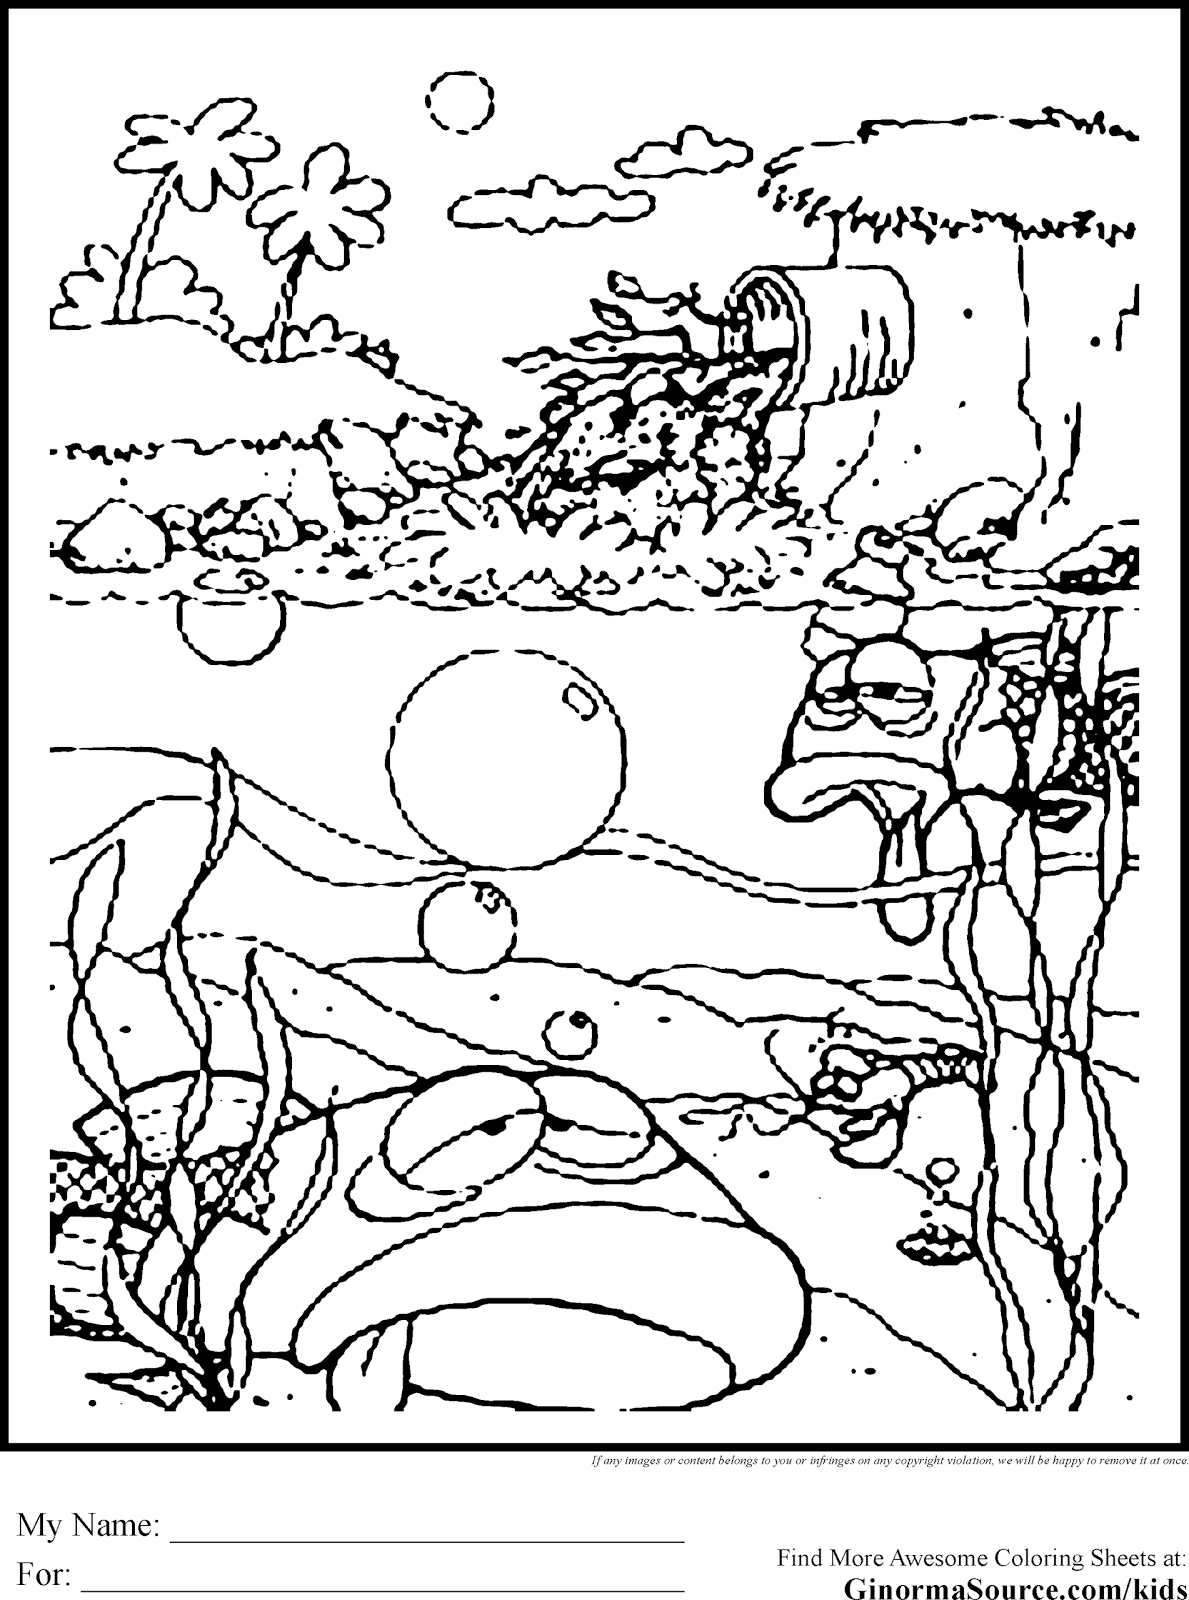 hawaii coloring pages hawaii coloring pages download and print hawaii coloring hawaii pages coloring